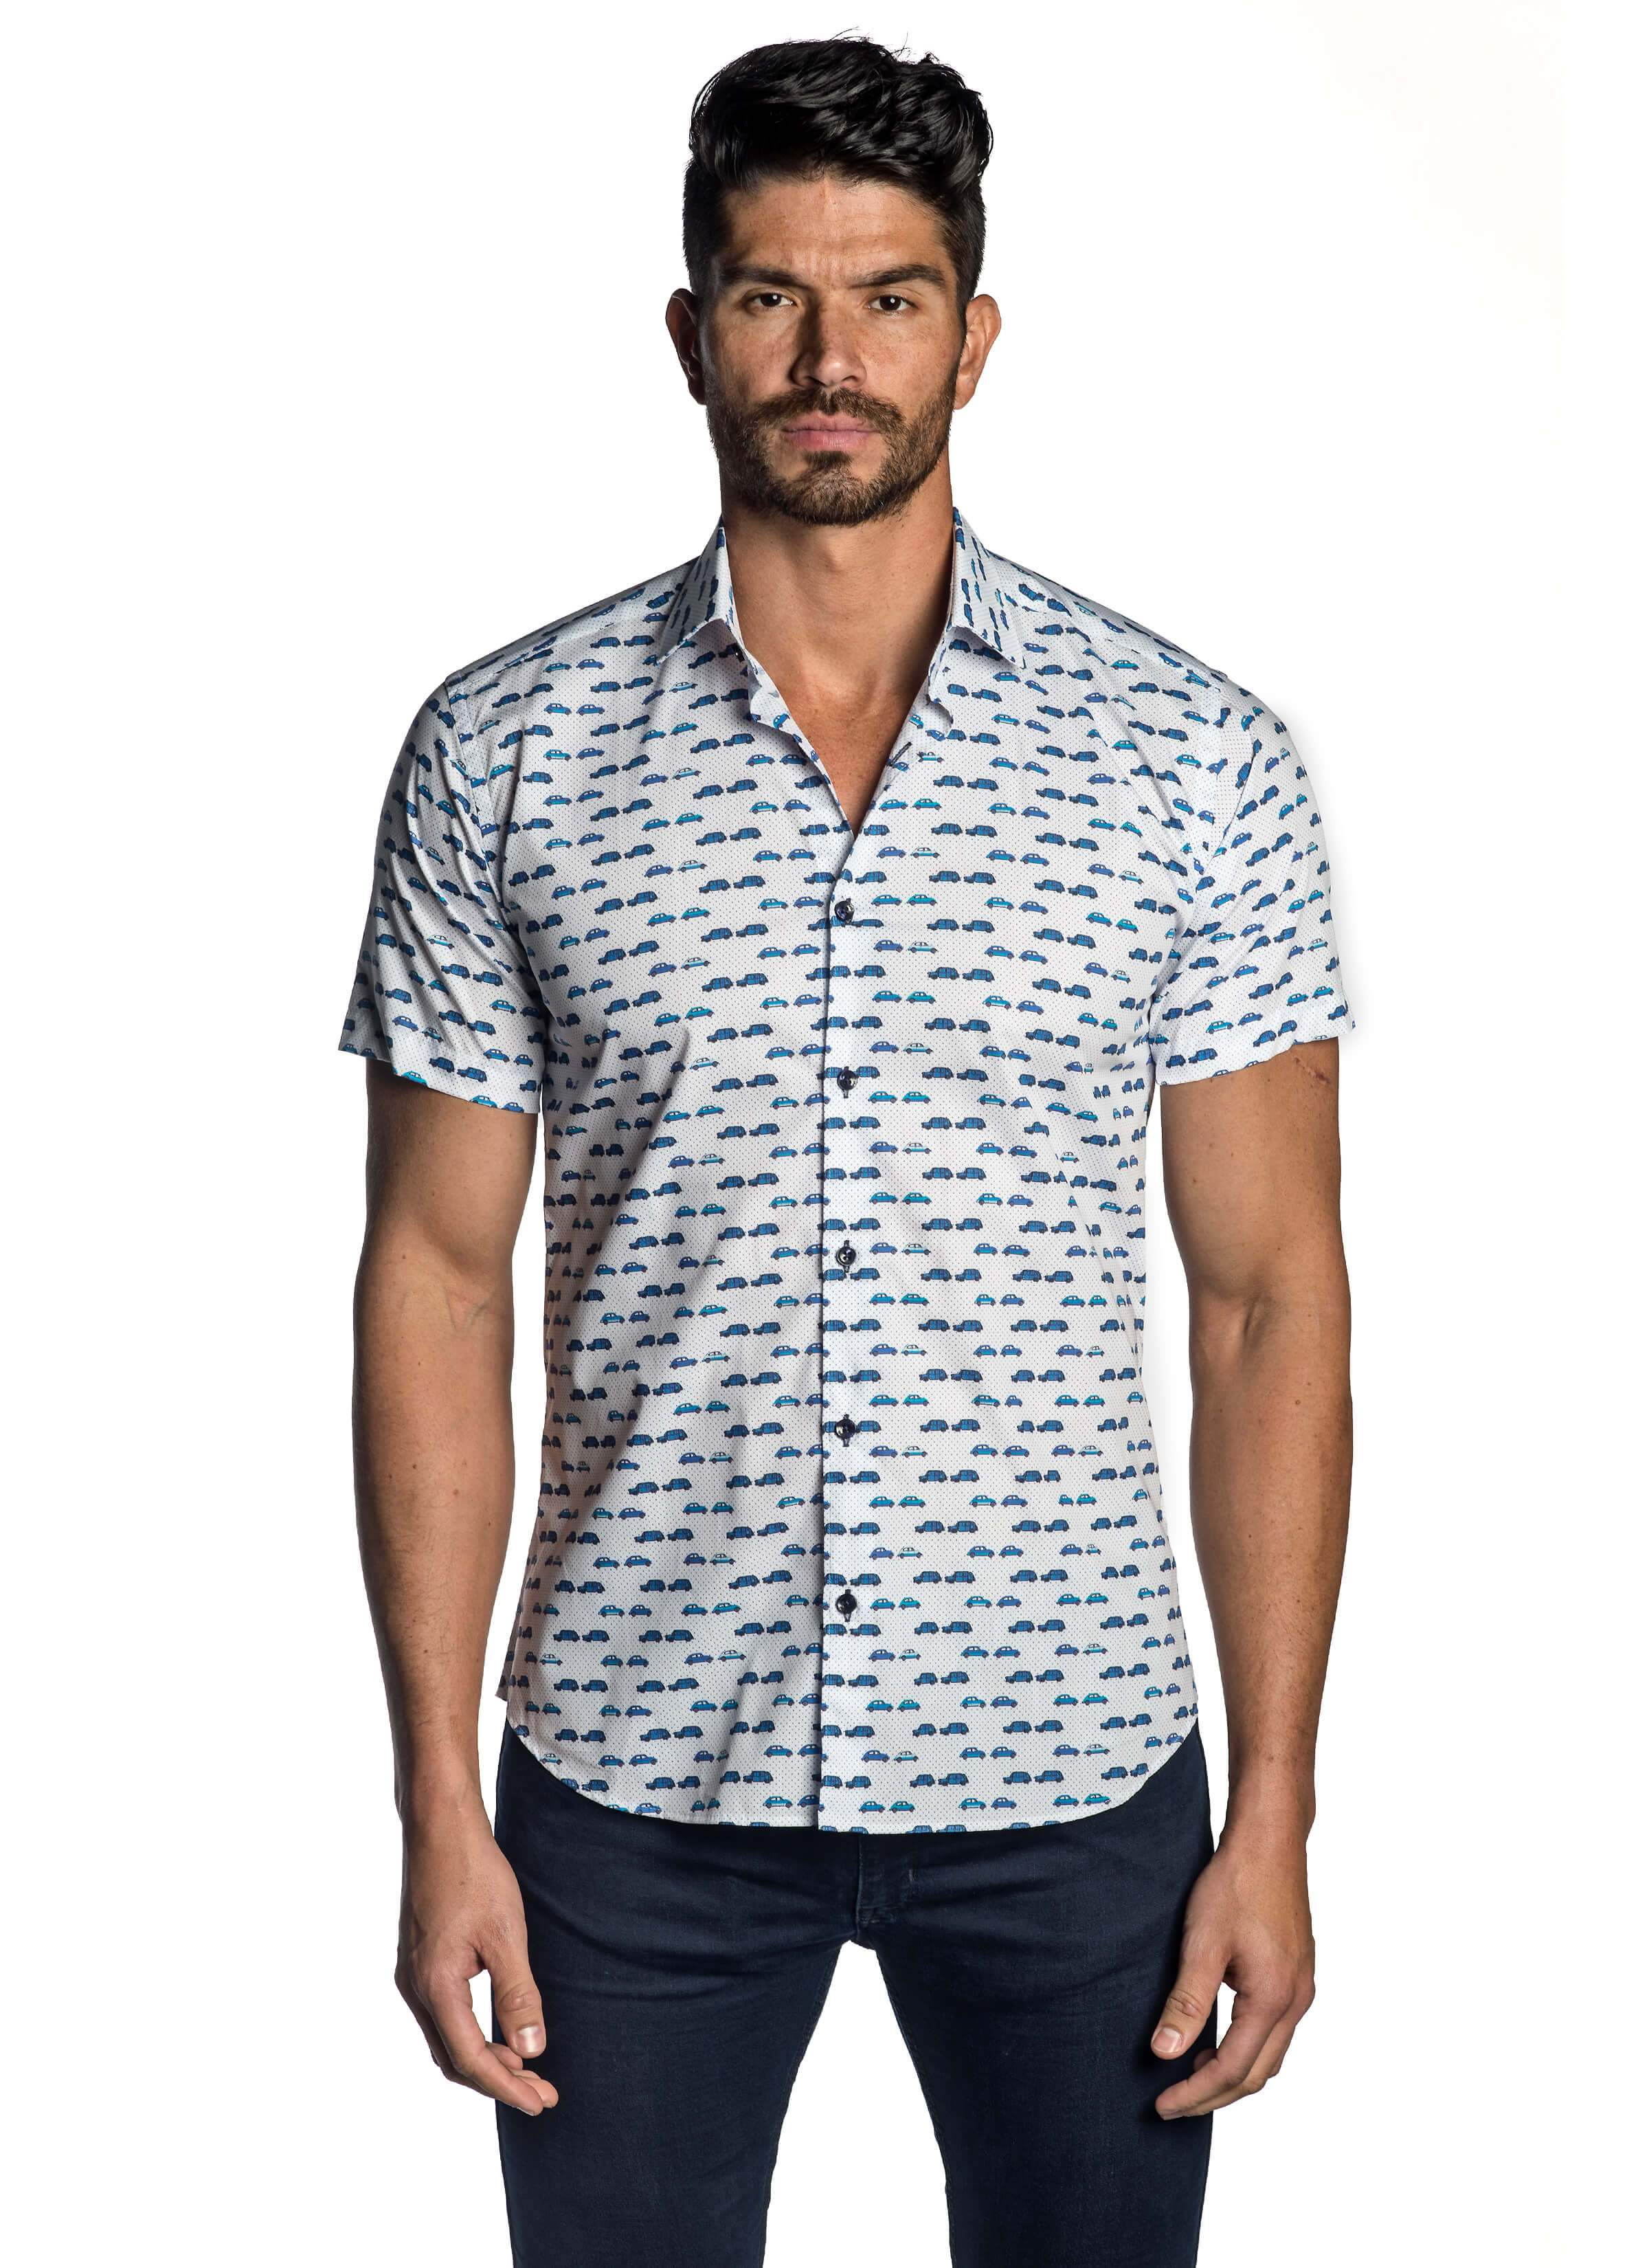 37ffba7e63c White and Blue British Car Print Shirt for Men T-5121-SS